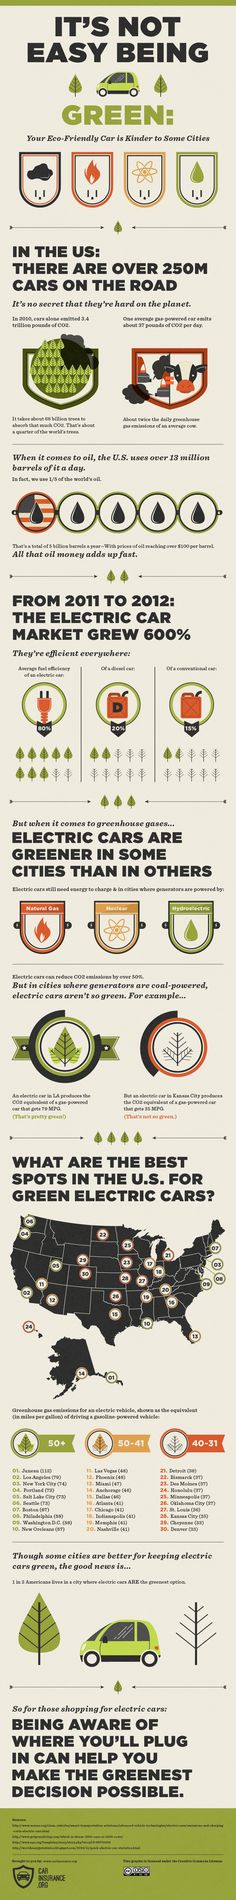 Infographic - Infographic Design Inspiration - Green Cars Infographic Infographic Design : – Picture : – Description Green Cars Infographic -Read More – Sustainable Design, Sustainable Living, Go Green, Green Cars, Eco Friendly Cars, Information Design, Alternative Energy, Electric Cars, Sustainability